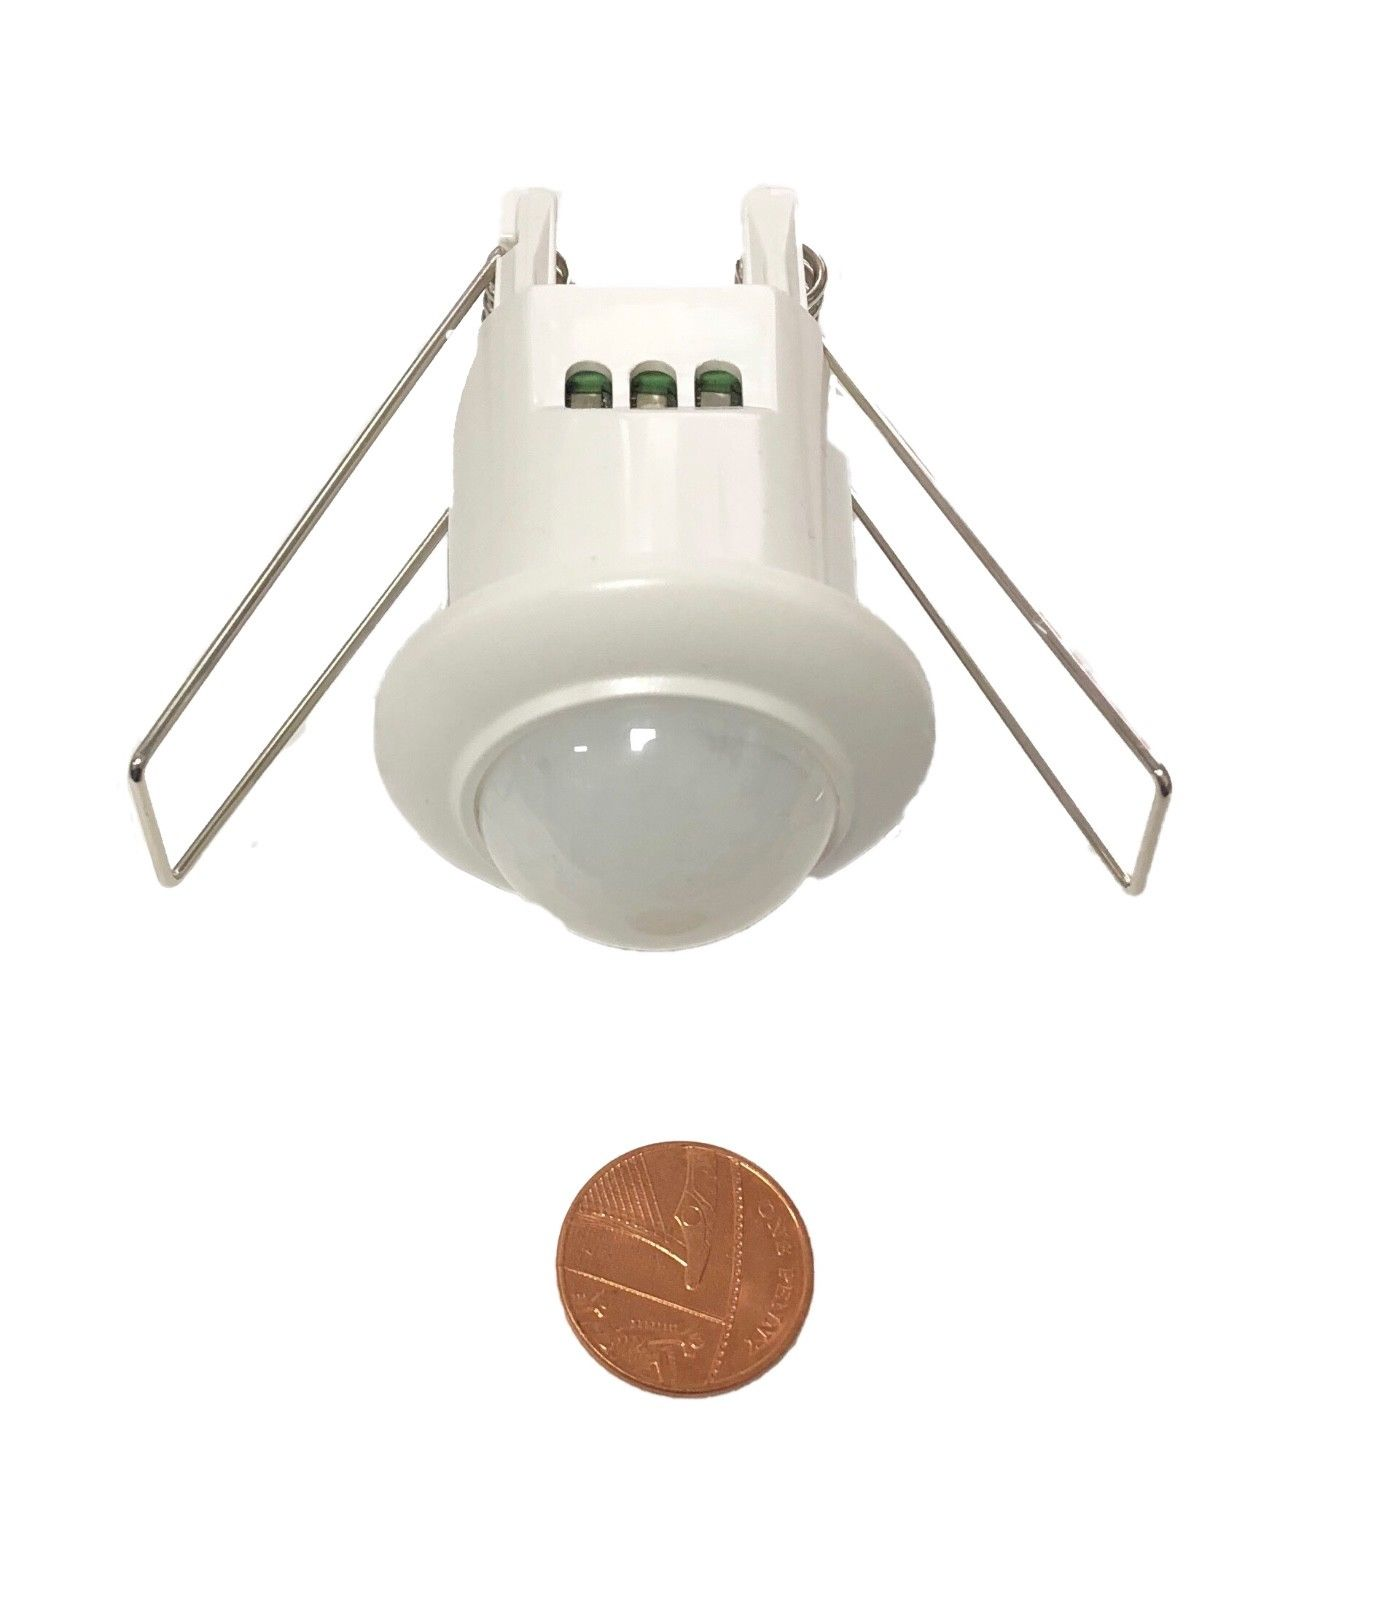 Mini Motion Sensor Detector Ceiling Light Switch Recessed 360